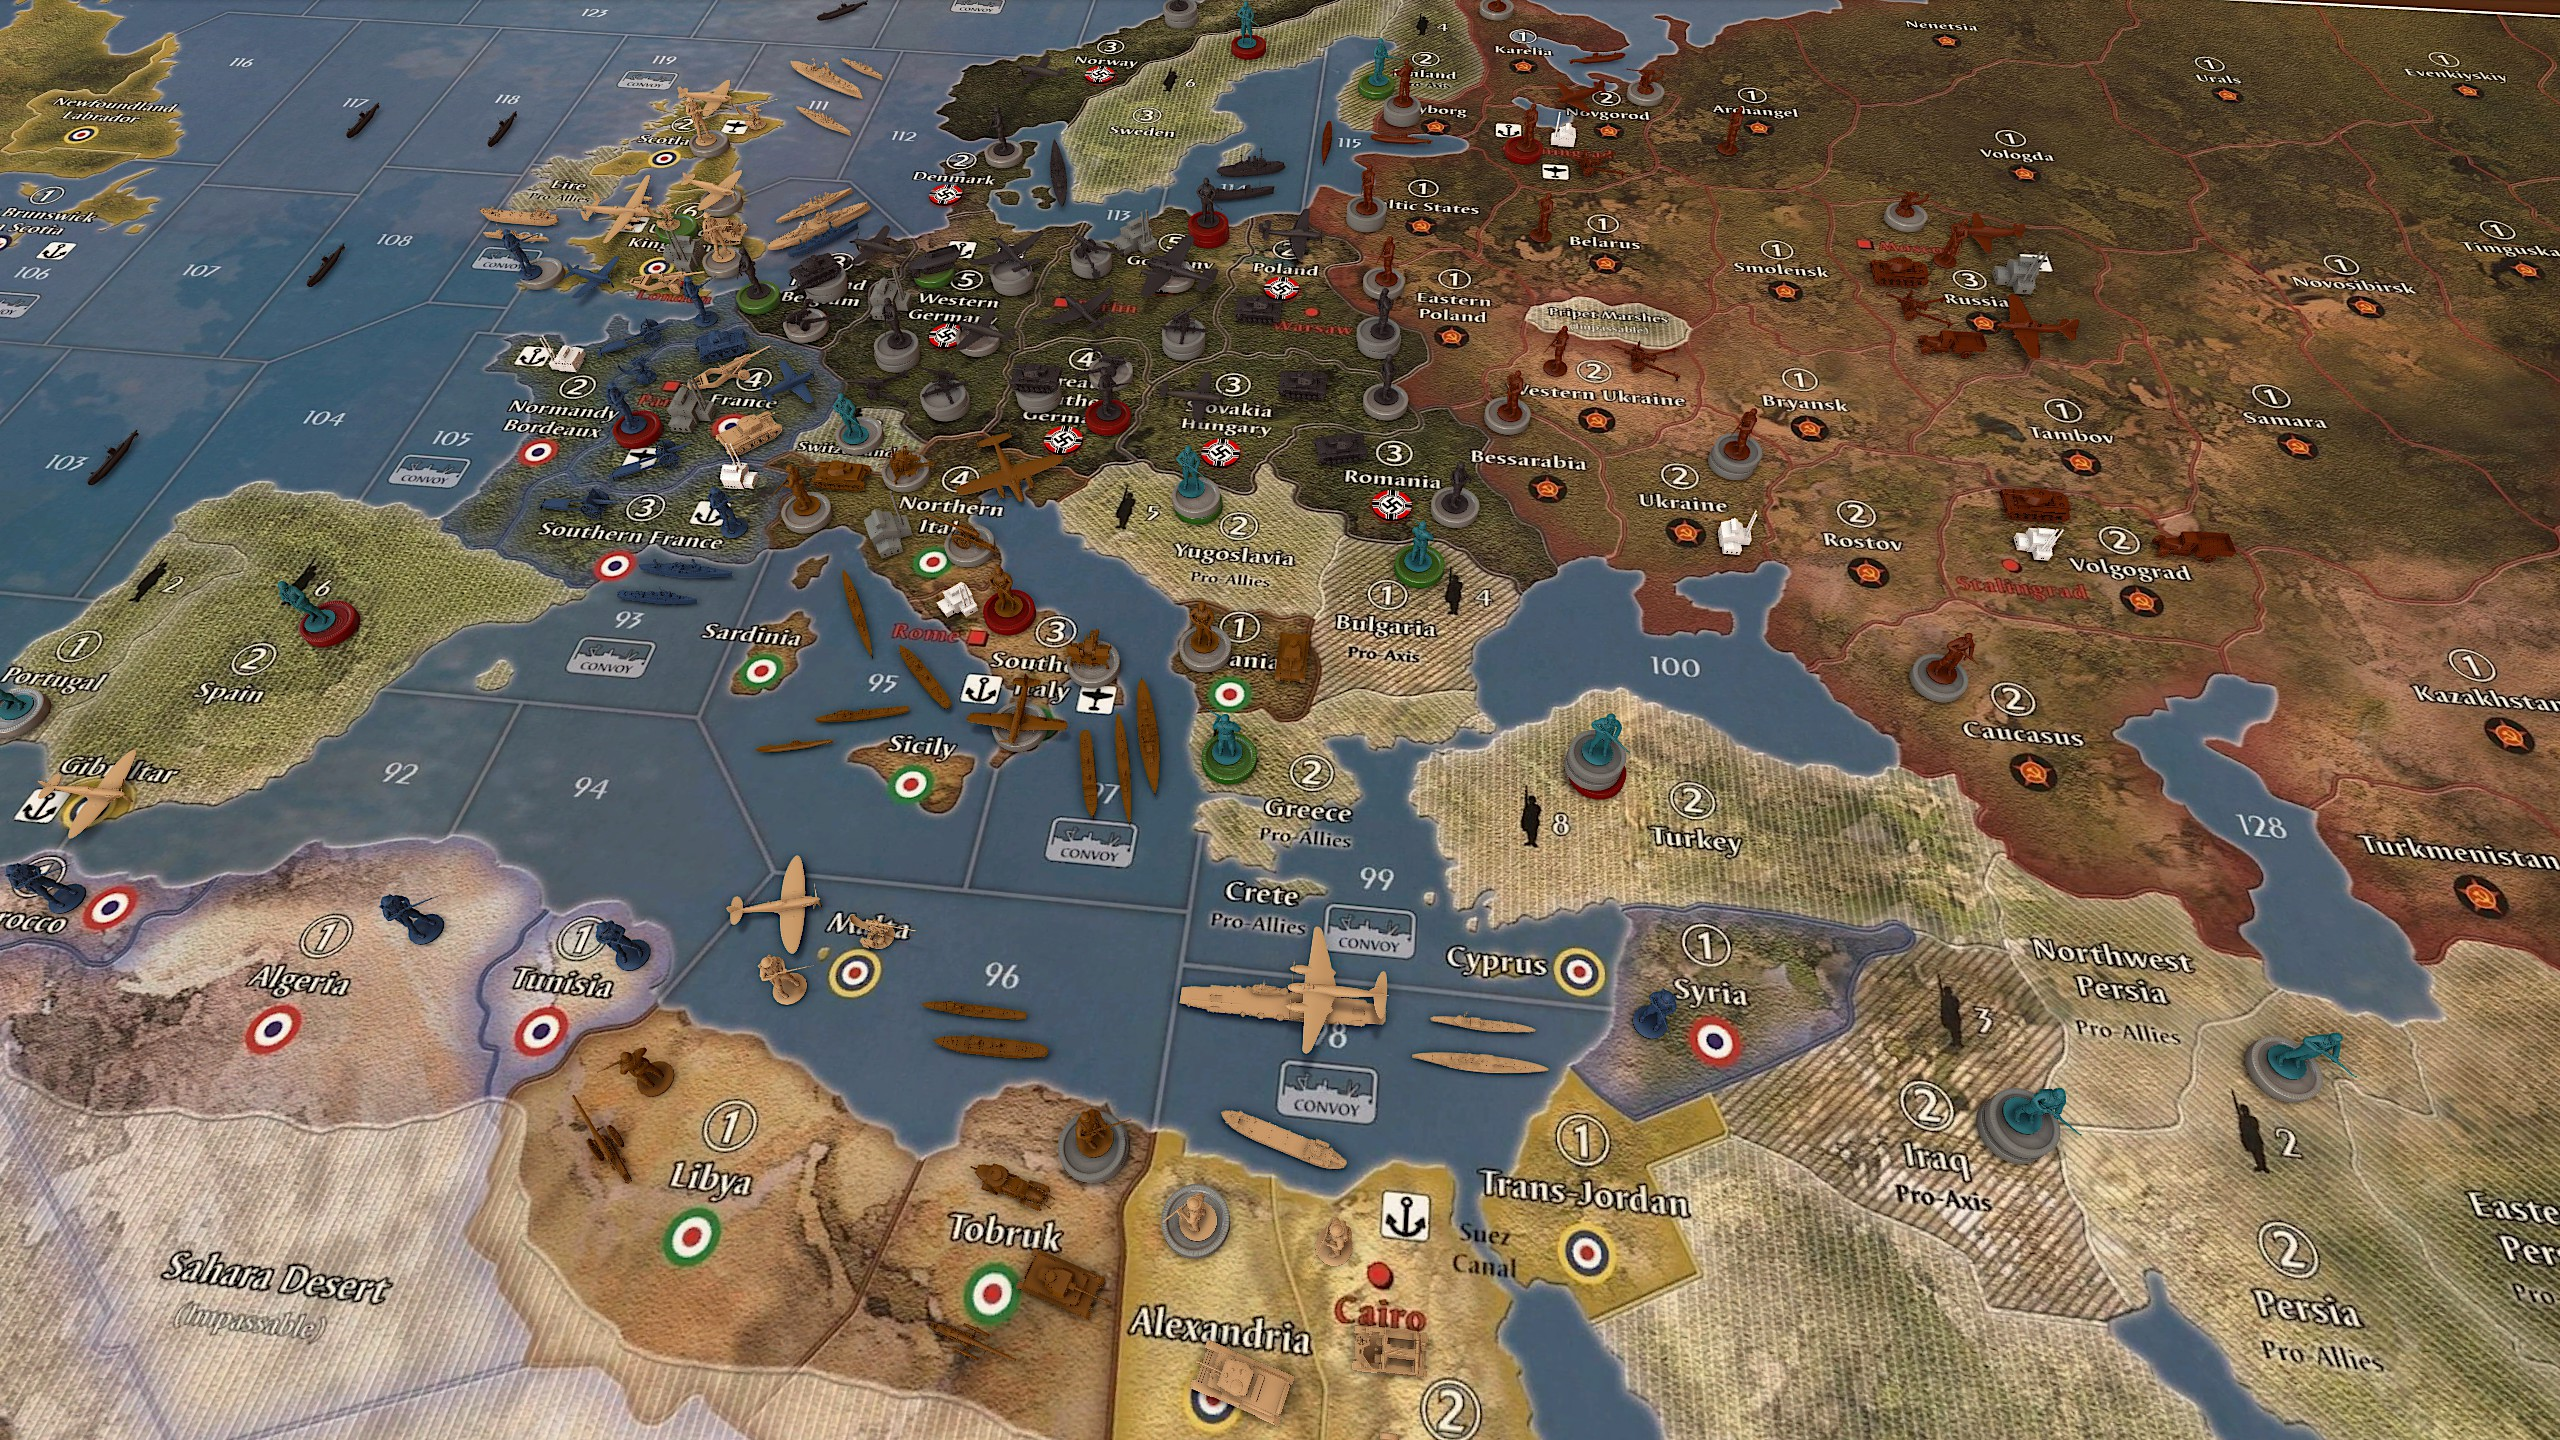 Game Table Online Axis And Allies | Decoration Items Image